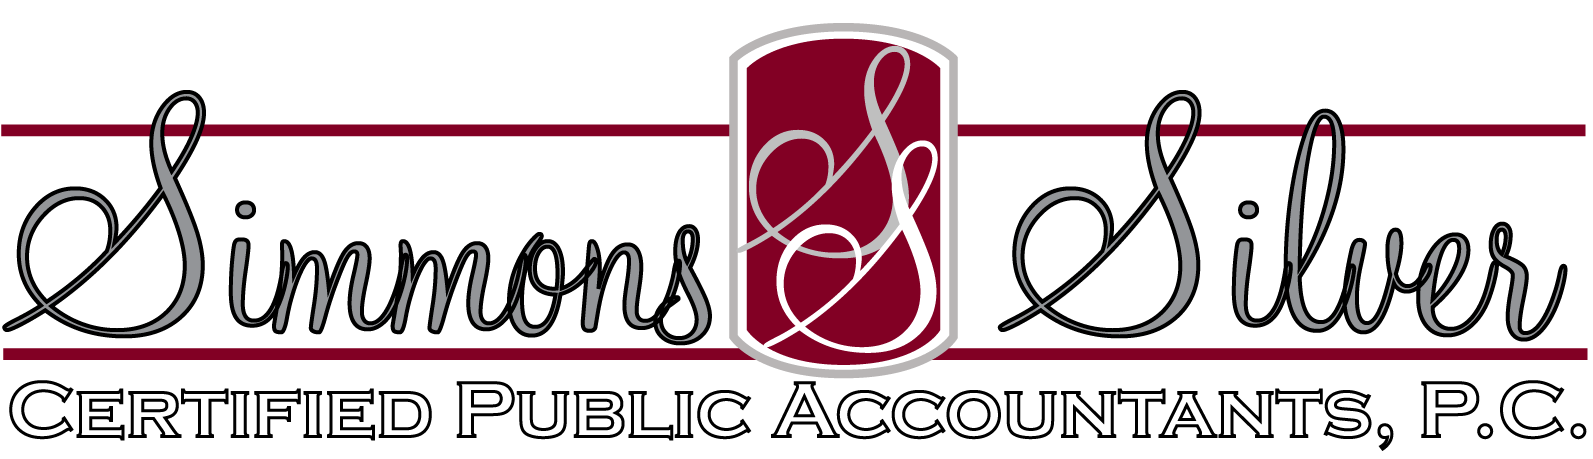 Sturgis, SD Accounting Firm | Internet Links Page | Simmons and Silver CPA, PC